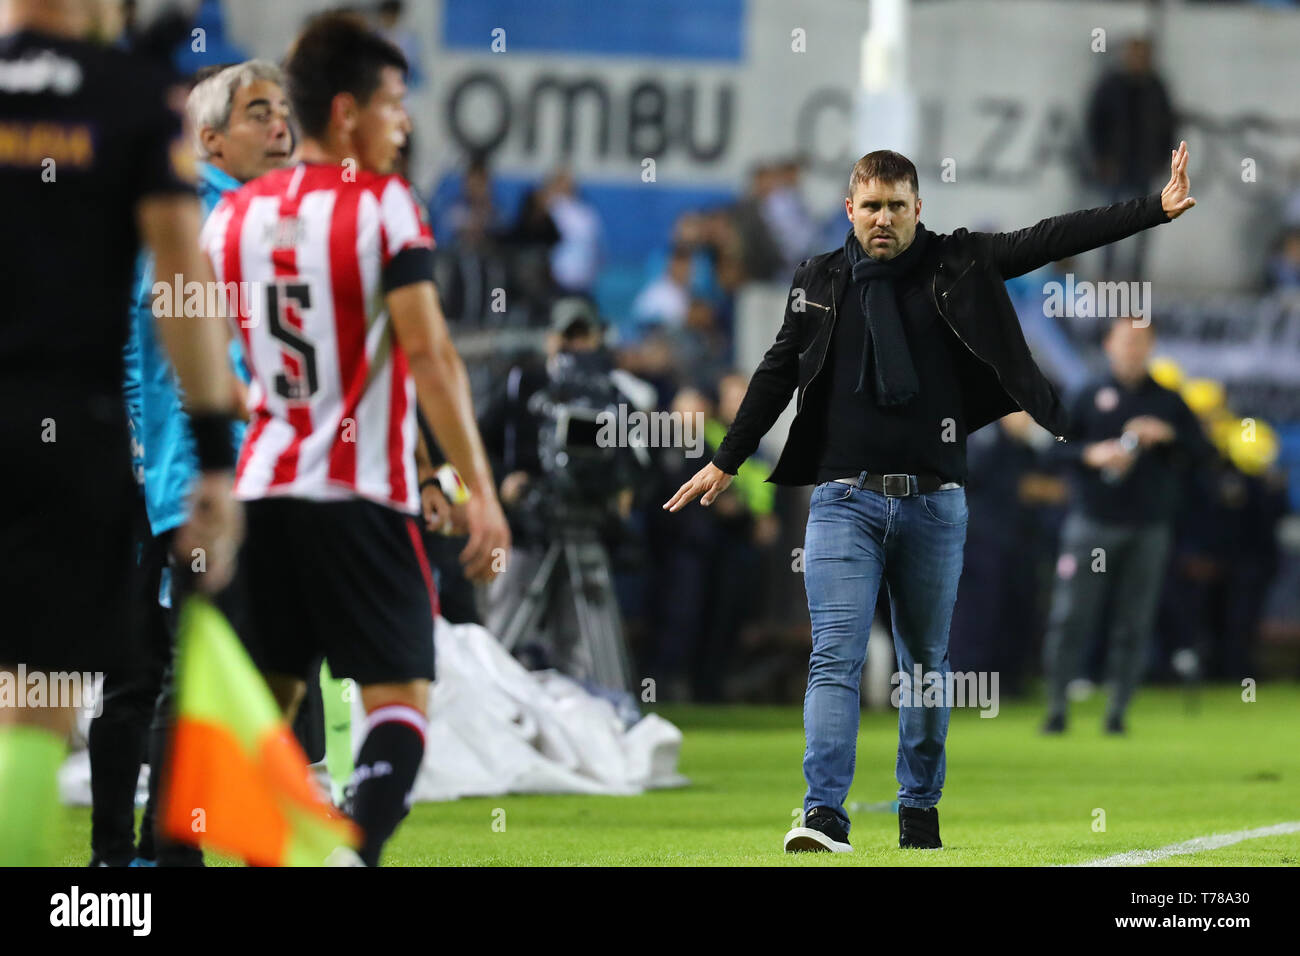 Buenos Aires, Argentina - May 04, 2019: Eduardo Coudet (DT of Racing Club) giving directions in the match against Estudiantes La Plata in Buenos Aires, Argentina - Stock Image